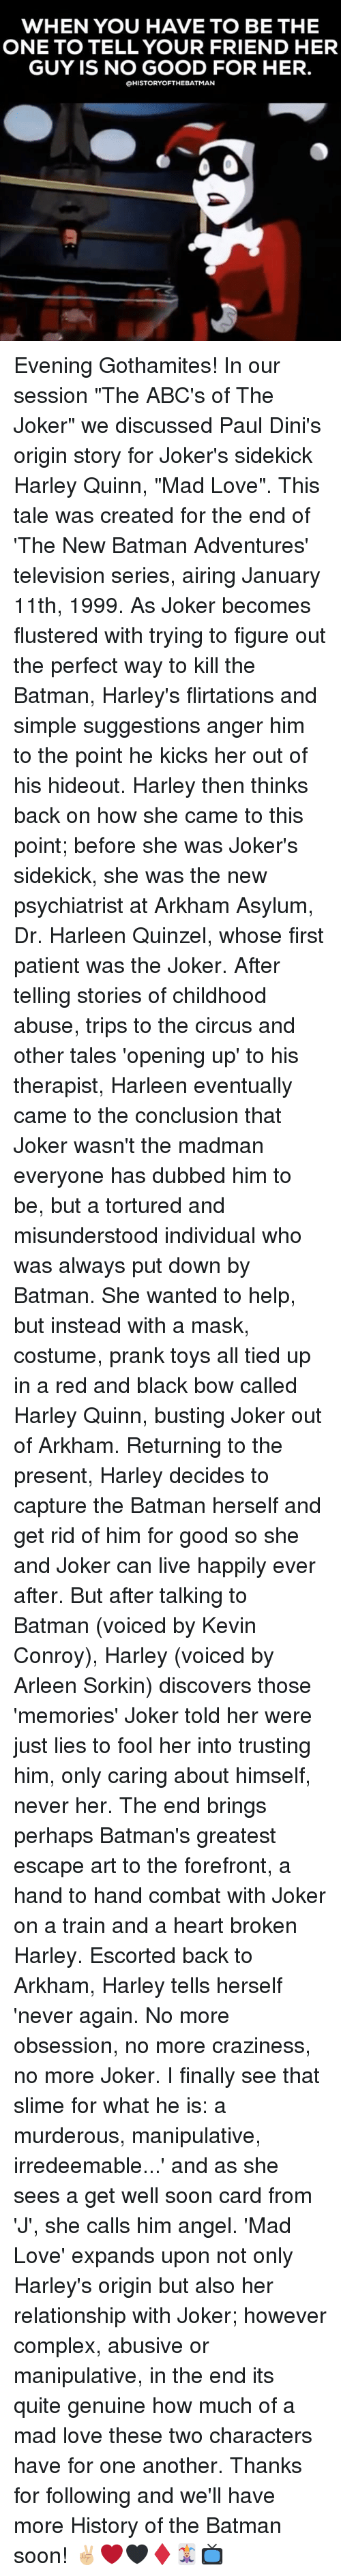 "Batman, Complex, and Joker: WHEN YOU HAVE TO BE THE  ONE TO TELL YOUR FRIEND HER  GUY IS NO GOOD FOR HER.  OHISTORYOFTHEBATMAN Evening Gothamites! In our session ""The ABC's of The Joker"" we discussed Paul Dini's origin story for Joker's sidekick Harley Quinn, ""Mad Love"". This tale was created for the end of 'The New Batman Adventures' television series, airing January 11th, 1999. As Joker becomes flustered with trying to figure out the perfect way to kill the Batman, Harley's flirtations and simple suggestions anger him to the point he kicks her out of his hideout. Harley then thinks back on how she came to this point; before she was Joker's sidekick, she was the new psychiatrist at Arkham Asylum, Dr. Harleen Quinzel, whose first patient was the Joker. After telling stories of childhood abuse, trips to the circus and other tales 'opening up' to his therapist, Harleen eventually came to the conclusion that Joker wasn't the madman everyone has dubbed him to be, but a tortured and misunderstood individual who was always put down by Batman. She wanted to help, but instead with a mask, costume, prank toys all tied up in a red and black bow called Harley Quinn, busting Joker out of Arkham. Returning to the present, Harley decides to capture the Batman herself and get rid of him for good so she and Joker can live happily ever after. But after talking to Batman (voiced by Kevin Conroy), Harley (voiced by Arleen Sorkin) discovers those 'memories' Joker told her were just lies to fool her into trusting him, only caring about himself, never her. The end brings perhaps Batman's greatest escape art to the forefront, a hand to hand combat with Joker on a train and a heart broken Harley. Escorted back to Arkham, Harley tells herself 'never again. No more obsession, no more craziness, no more Joker. I finally see that slime for what he is: a murderous, manipulative, irredeemable...' and as she sees a get well soon card from 'J', she calls him angel. 'Mad Love' expands upon not only Harley's origin but also her relationship with Joker; however complex, abusive or manipulative, in the end its quite genuine how much of a mad love these two characters have for one another. Thanks for following and we'll have more History of the Batman soon! ✌🏼❤️🖤♦️🃏📺"